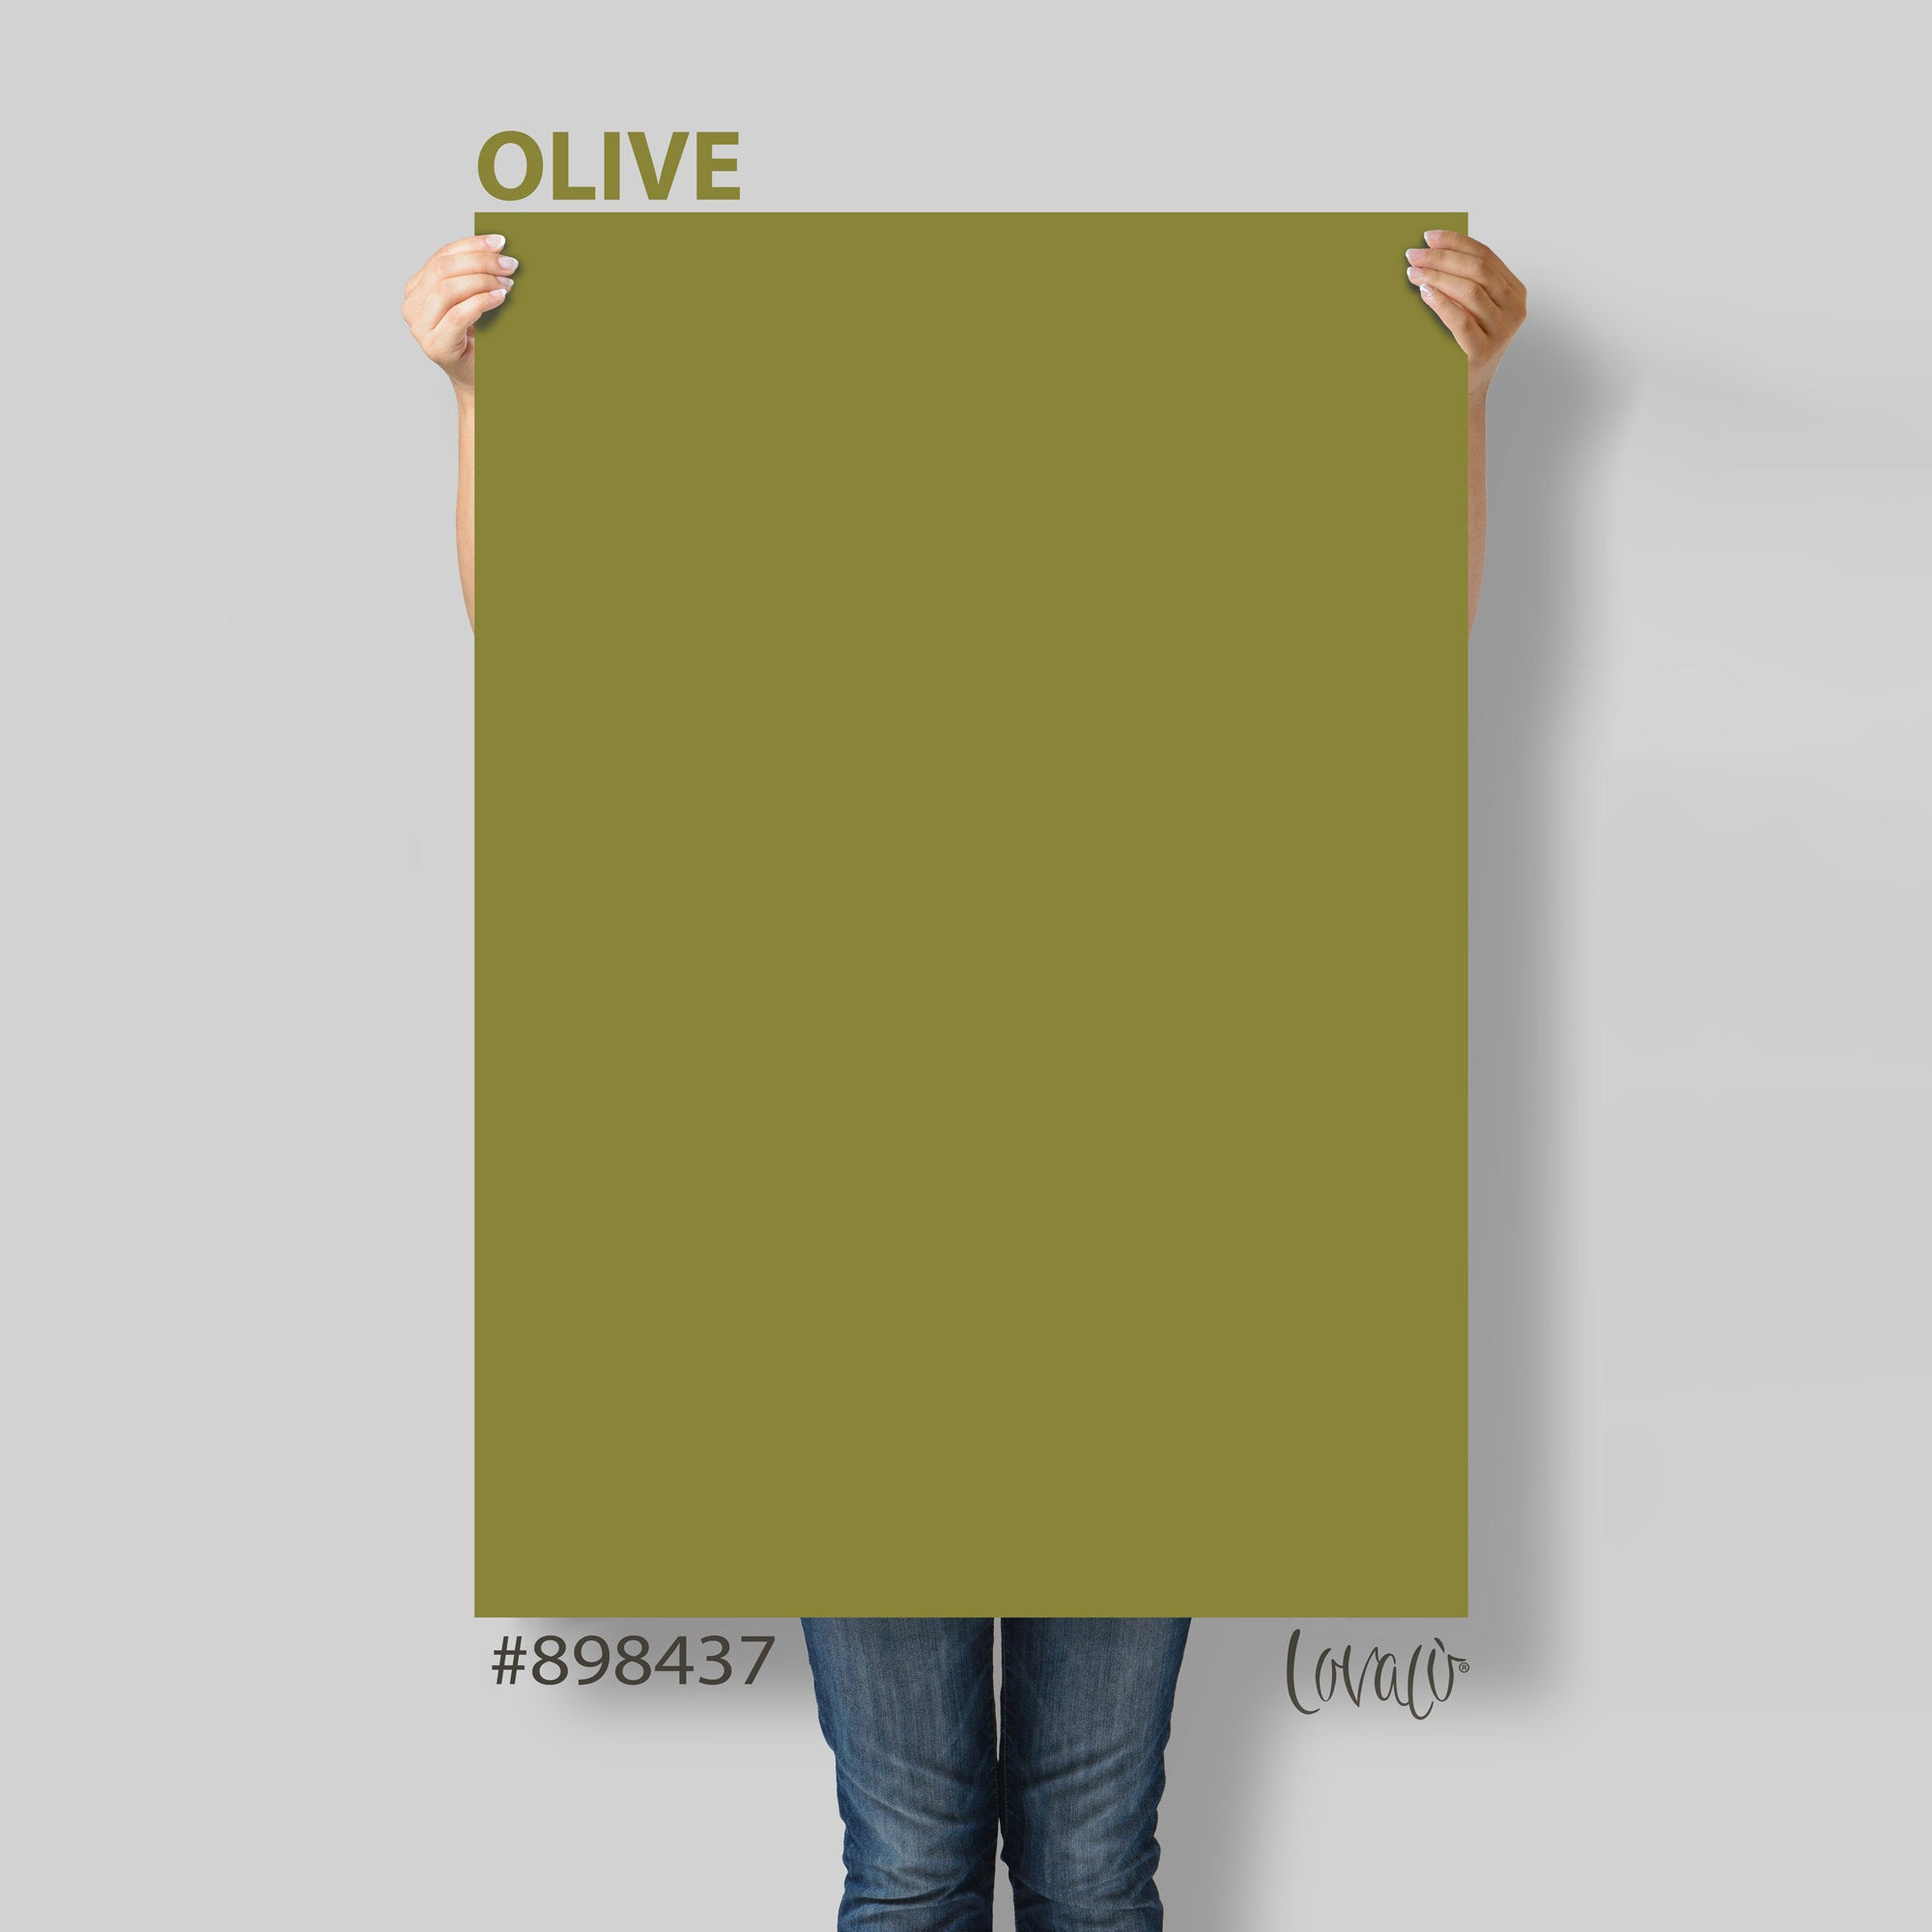 Green Olive solid color Photography Backdrop for Product, Instagram, Flat lay, Social, New born & Food Photography - Lov4030